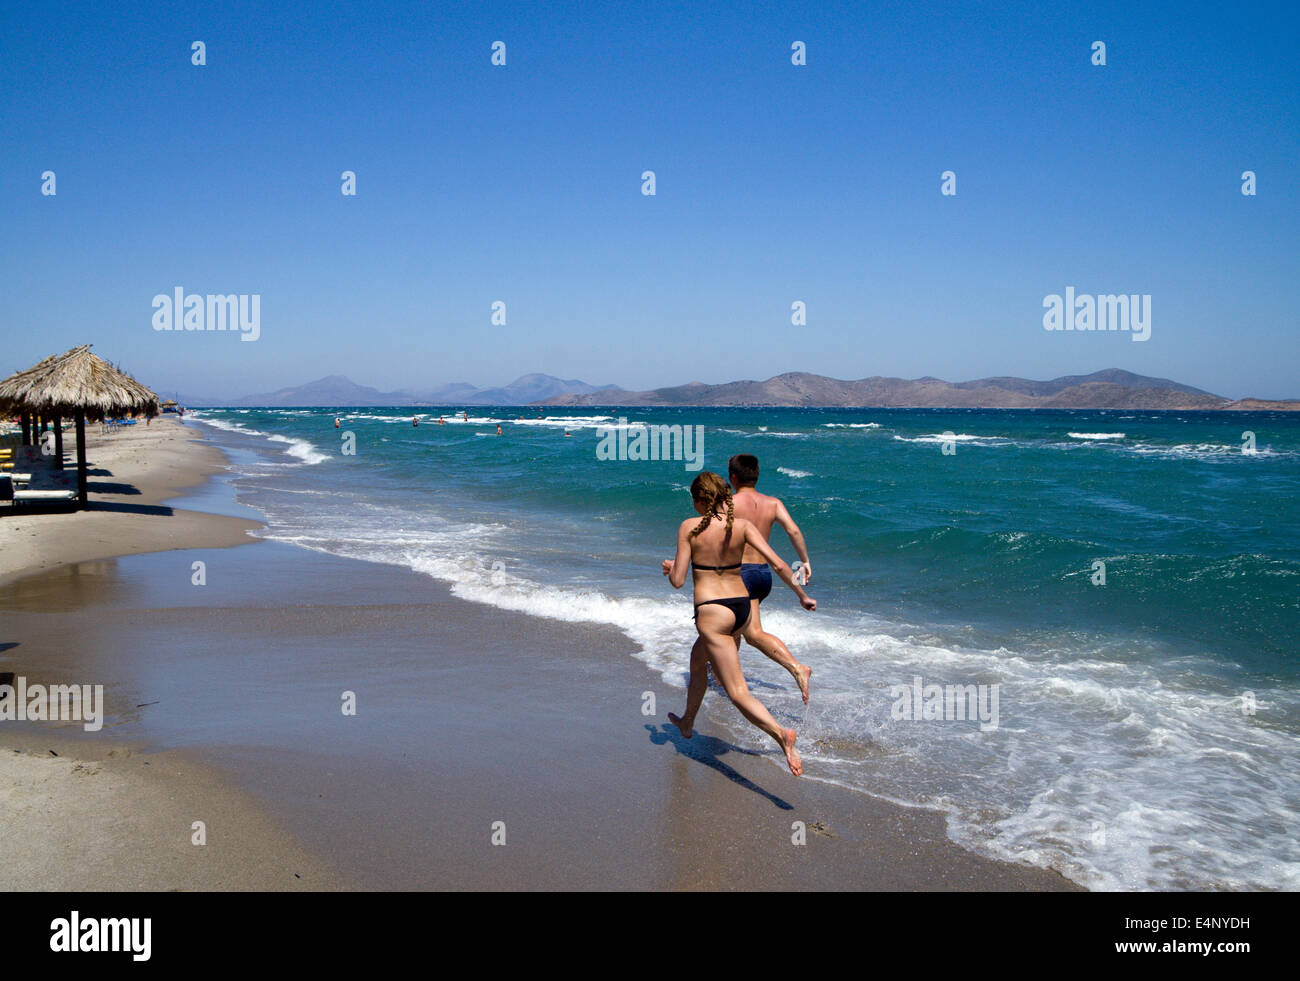 People running along Tingaki Beach, Tingaki, Kos Island, Greece. Stock Photo